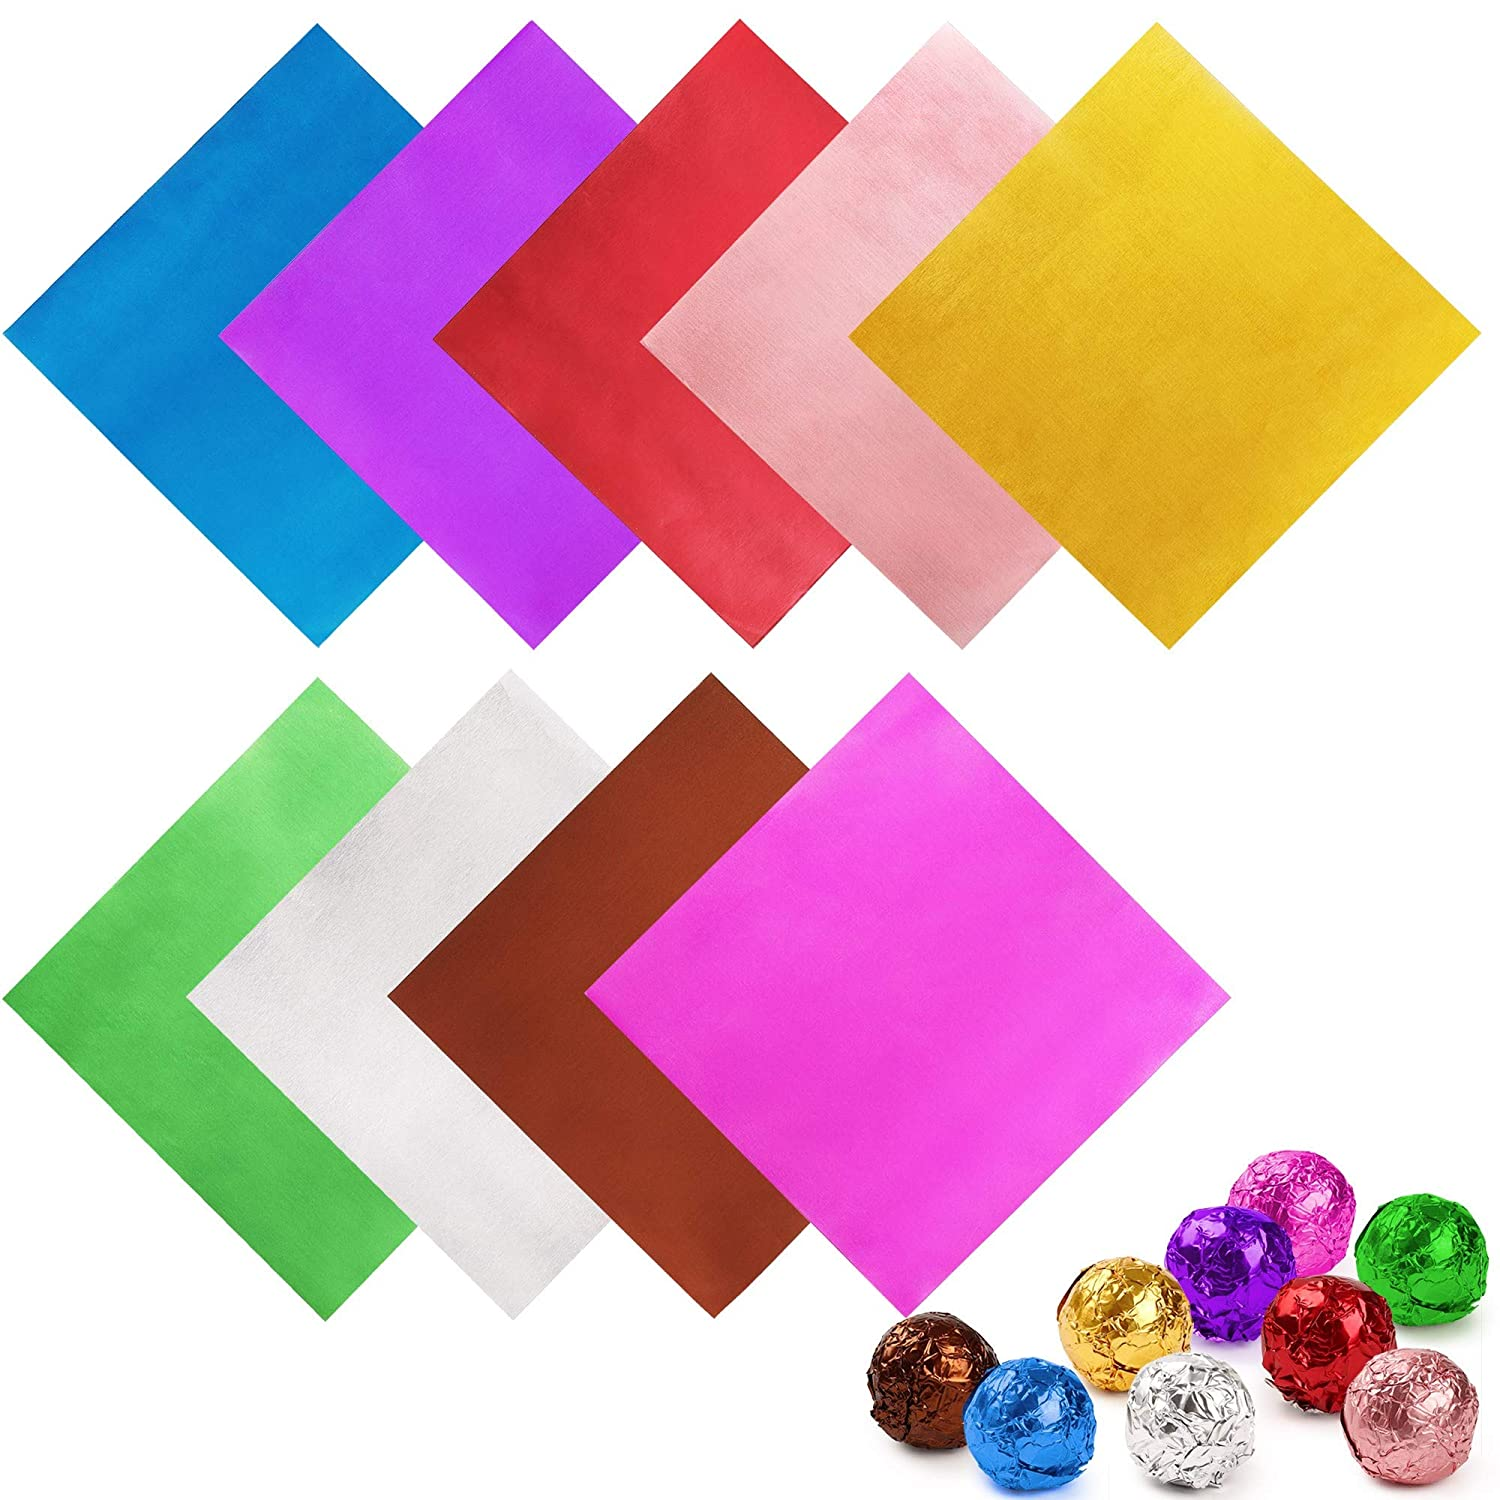 LotFancy 900 pieces Candy Wrappers for Chocolates, 4x4 inch Aluminum Foil Wrapper, Square Candy Wrapping Paper, Colored Foil Sheets for DIY Homemade Candies Party Favors Decorations, 9 Colors